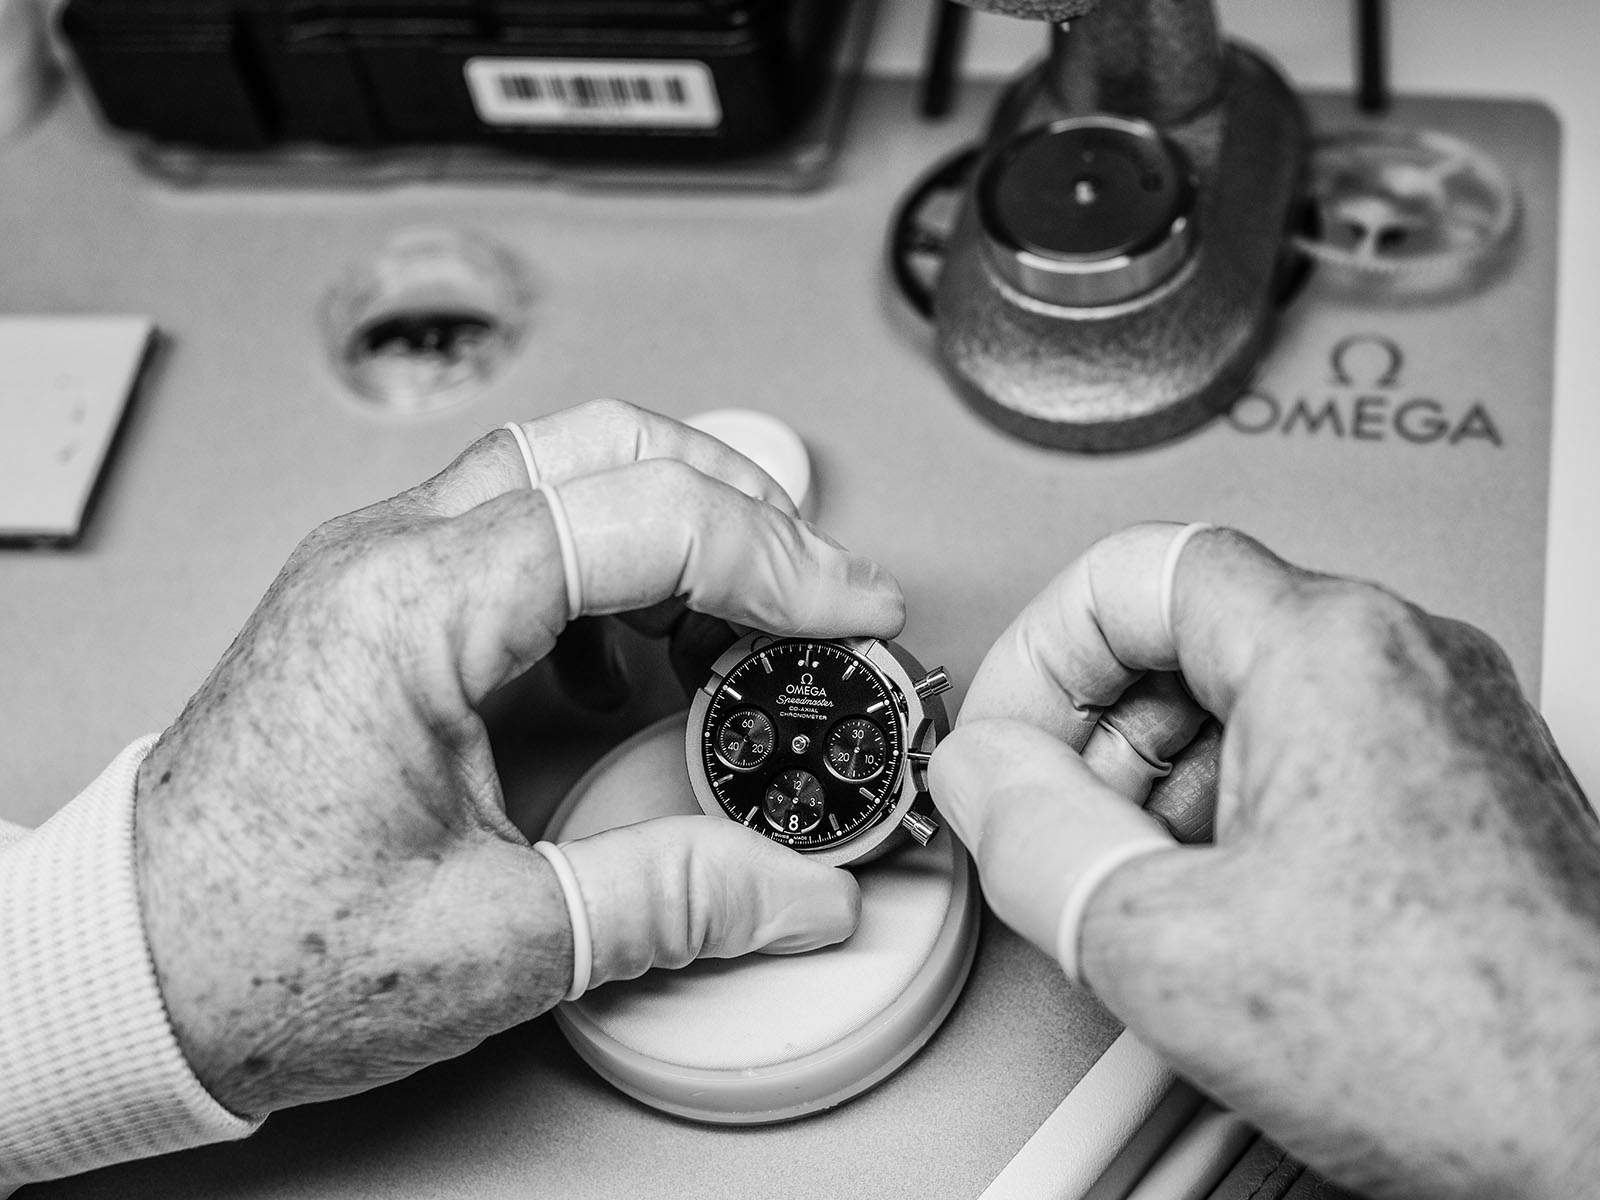 Man adjusting a watch